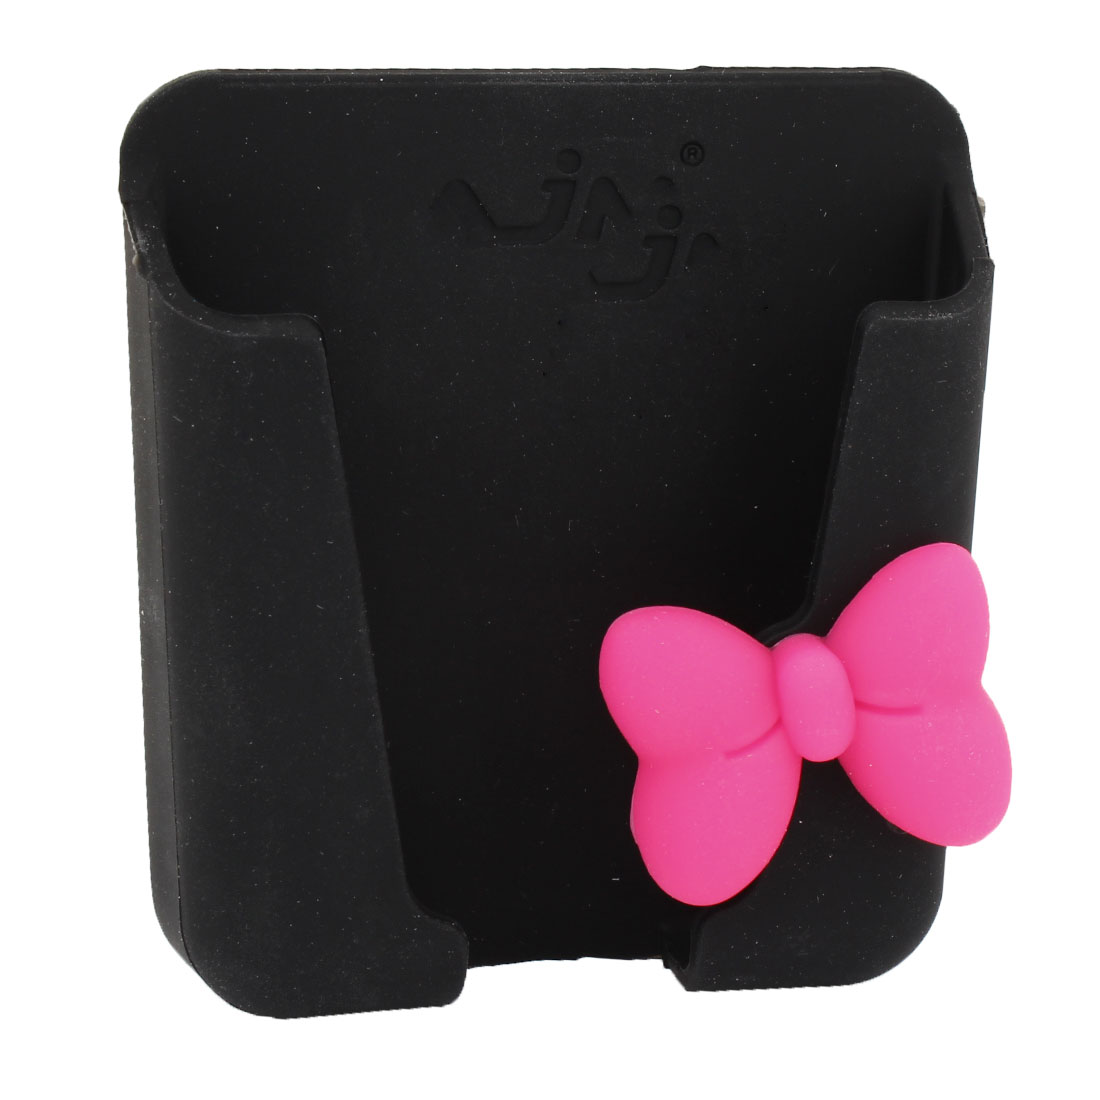 Car Cute Bowknot Decor Black Silicone Adhesive Tape Phone Storage Holder